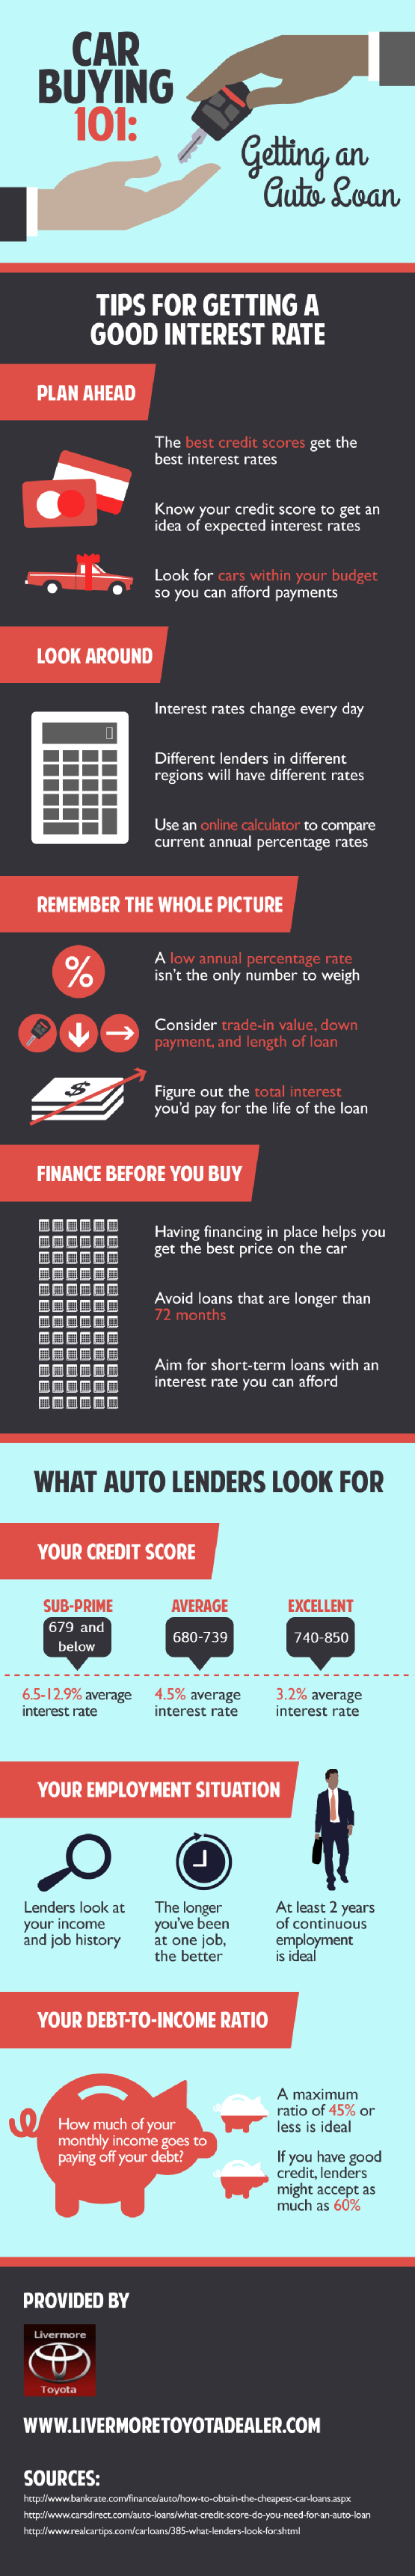 Financing a car before buying it helps buyers get the best interest rates. Short-term loans with an affordable interest rate are the best financial option. Check out this infographic from a Toyota dealership in Livermore, California, for more tips on getting the best auto loans.